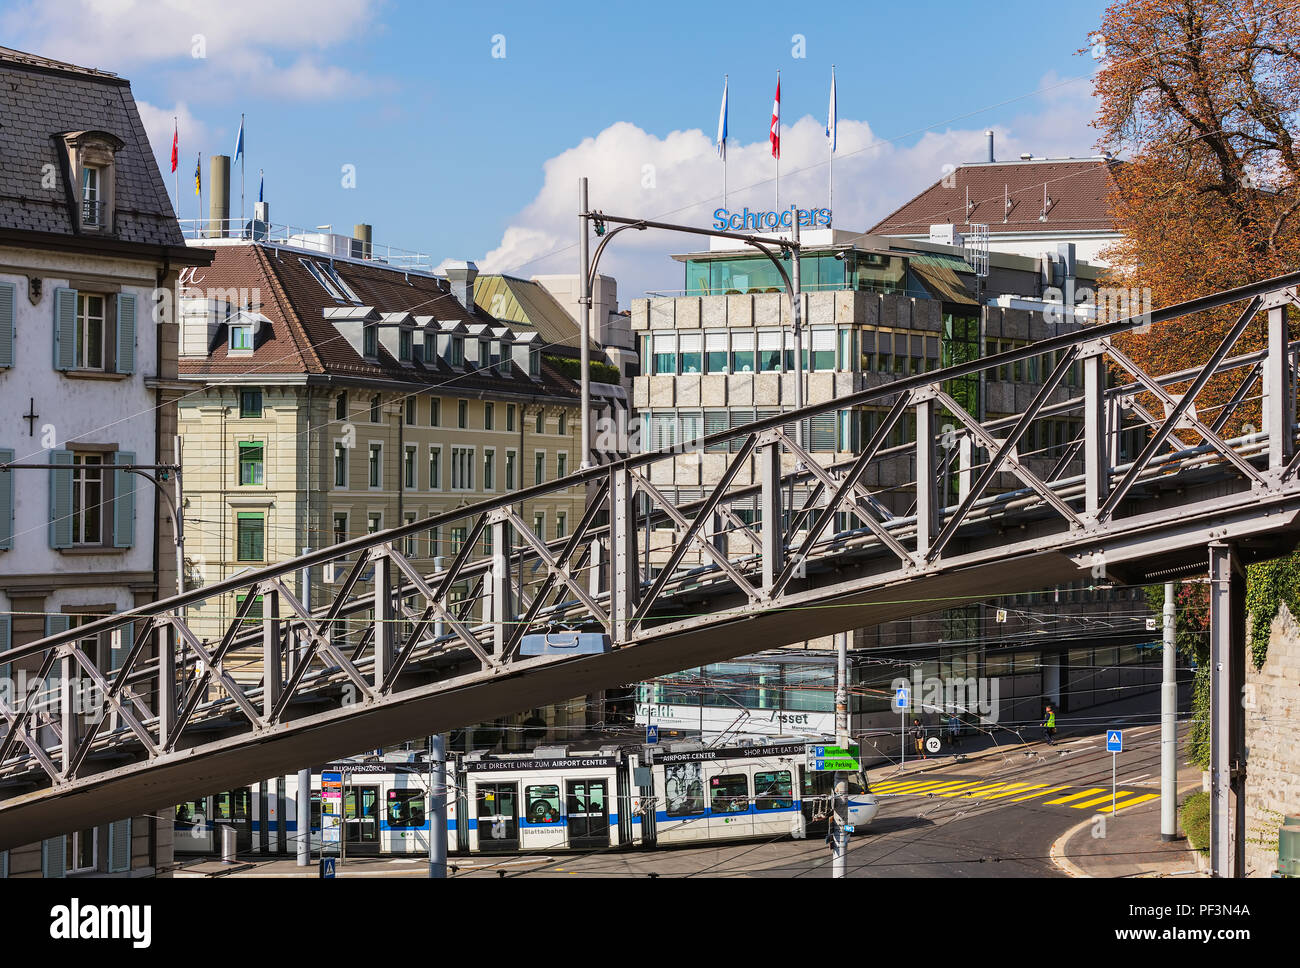 Zurich, Switzerland - September 25, 2017: the Polybahn funicular railway. The Polybahn, also known as the UBS Polybahn, is a funicular railway in the  Stock Photo